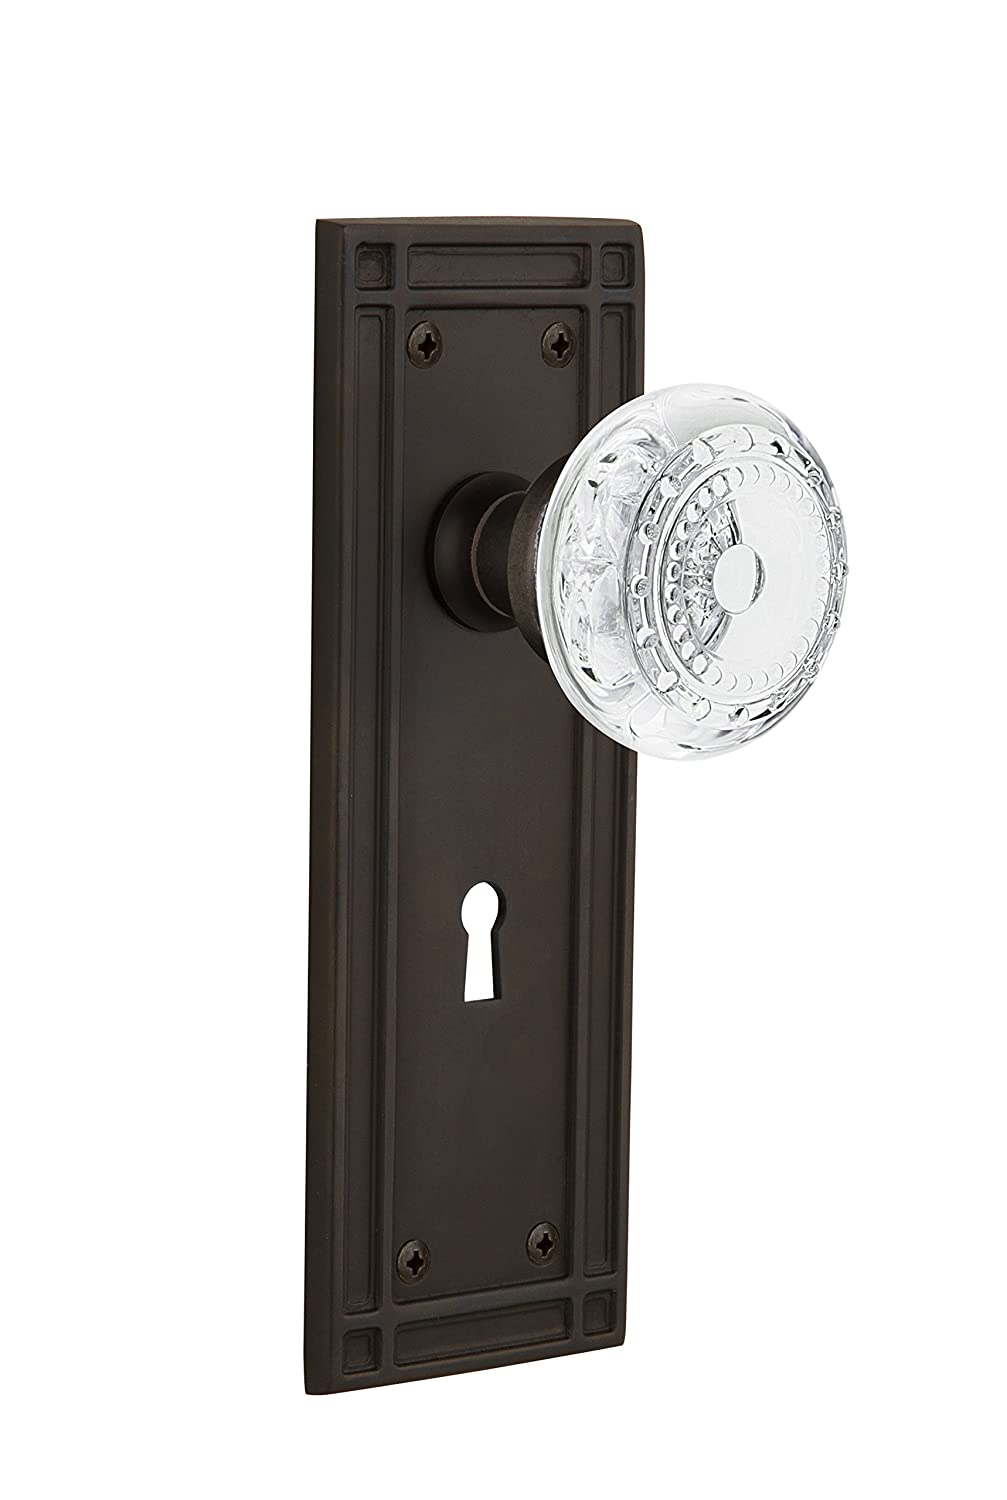 Nostalgic Warehouse 752389 Mission Plate with with Keyhole Crystal Meadows Knob Privacy Backset Size 2.75 Oil-Rubbed Bronze